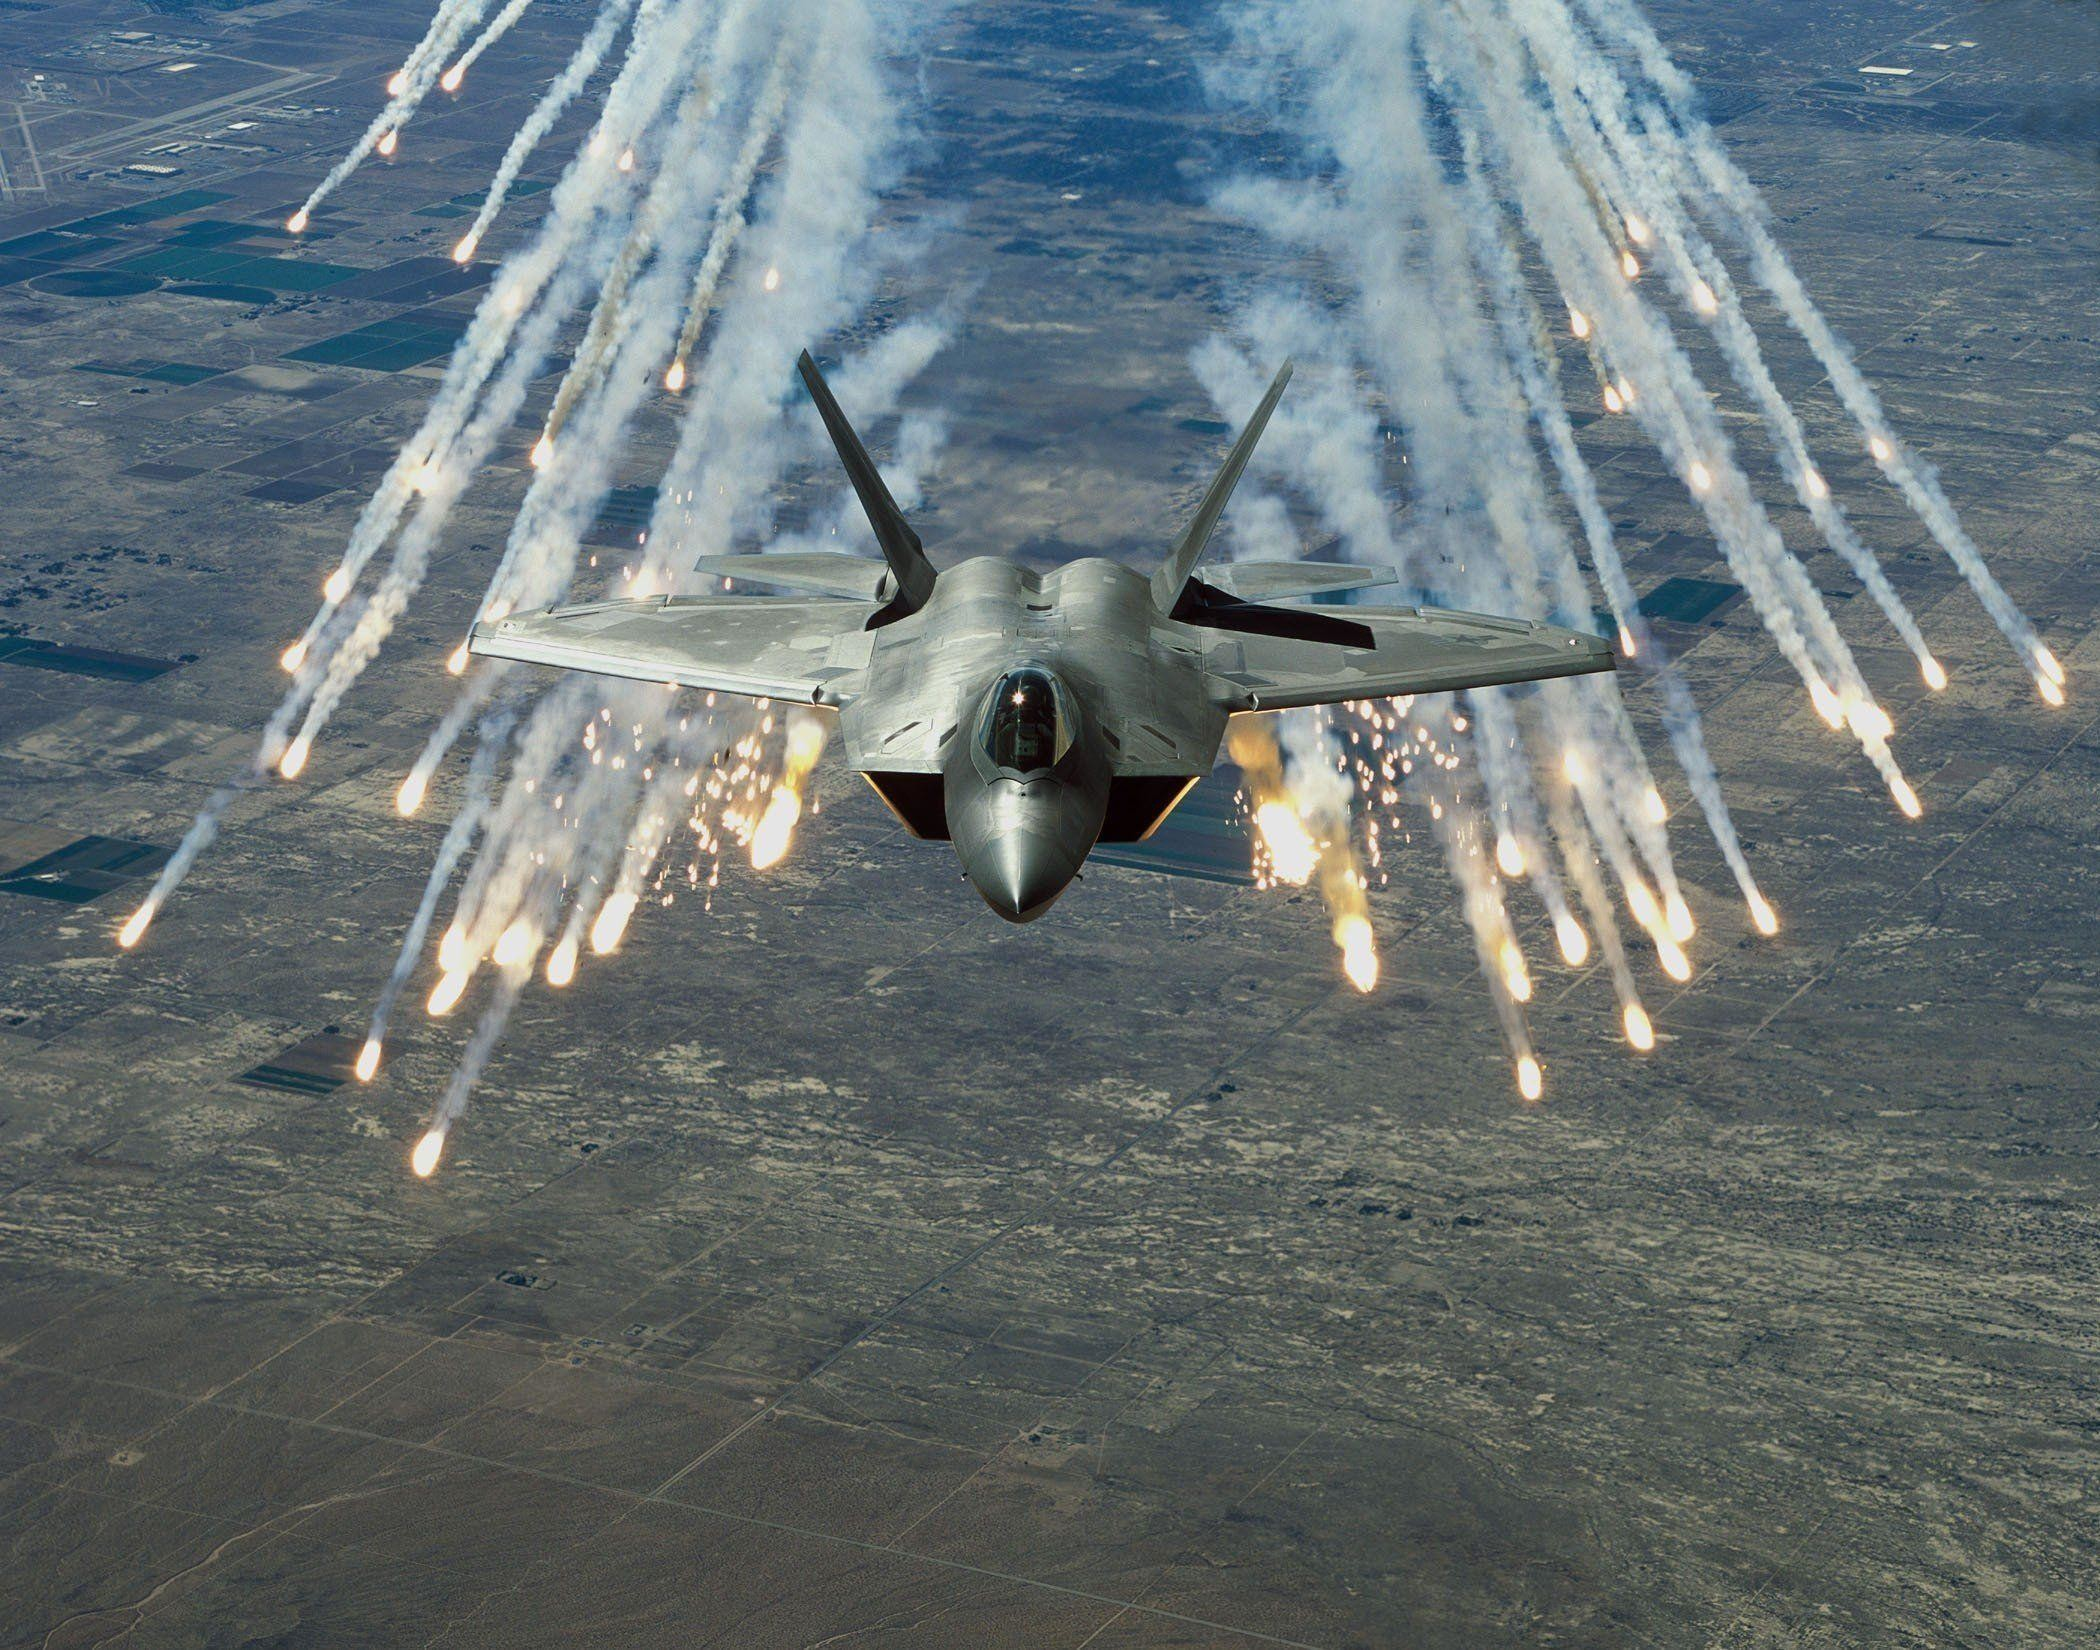 2100x1650 Military aircraft Wallpaper, Pictures | Cool Wallpapers